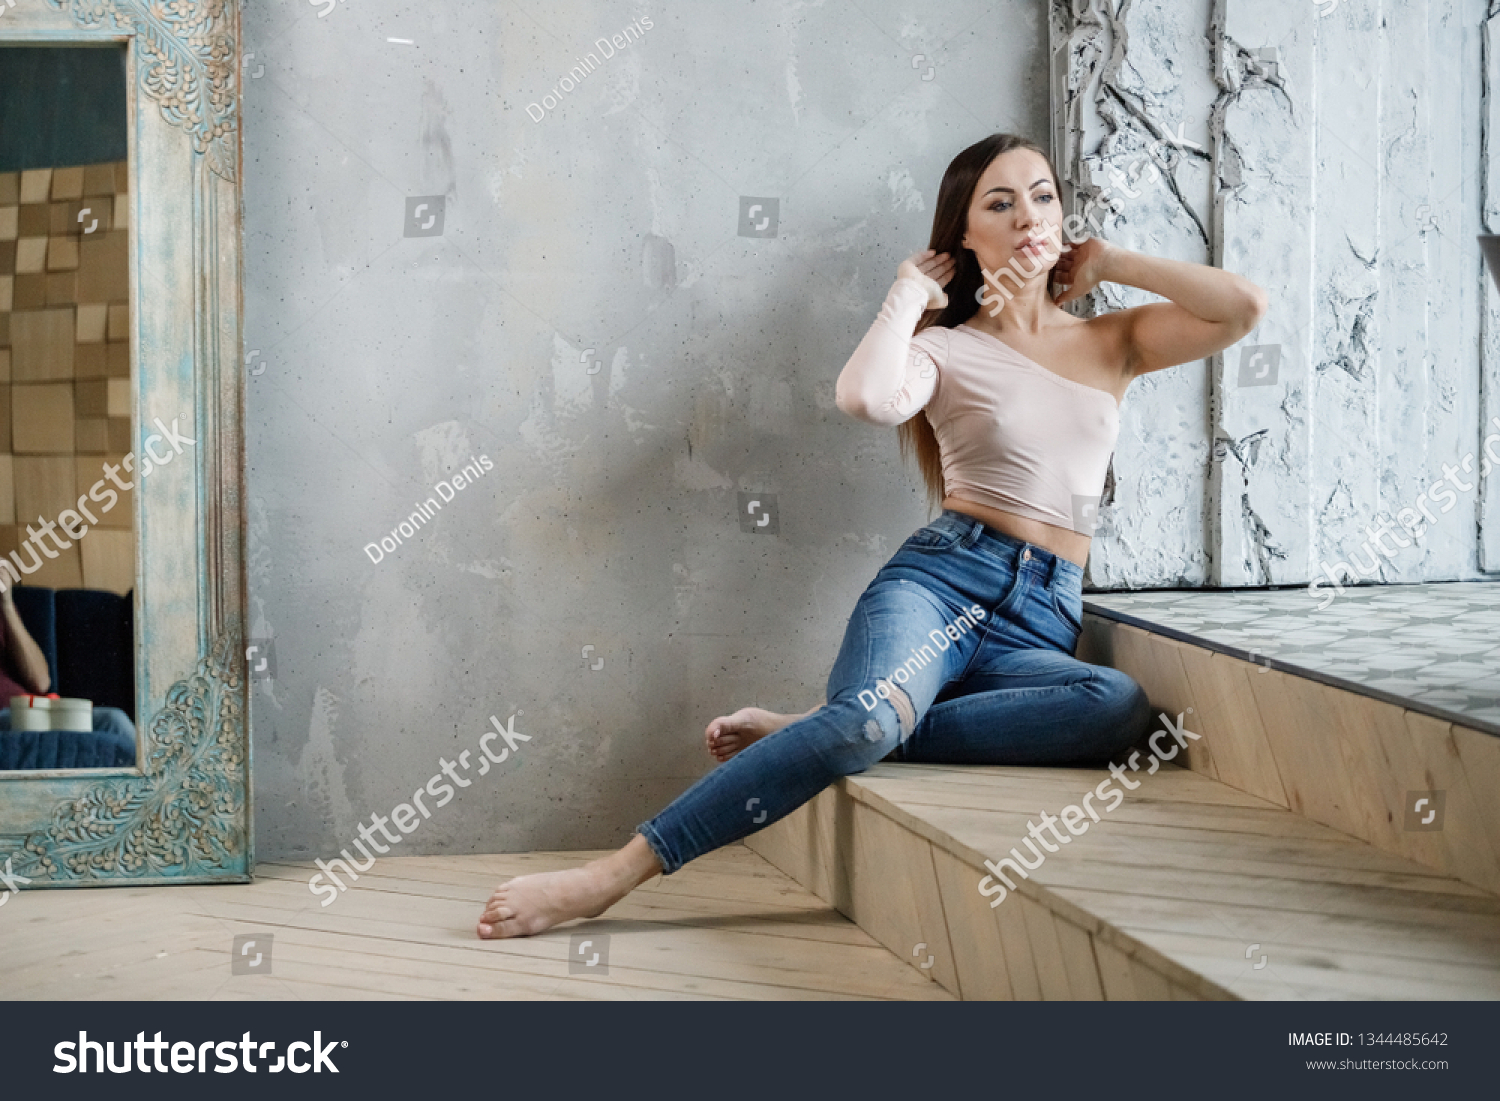 https://image.shutterstock.com/shutterstock/photos/1344485642/display_1500/stock-photo-beautiful-girl-sexy-brunette-in-jeans-and-t-shirt-posing-in-a-room-in-the-interior-1344485642.jpg